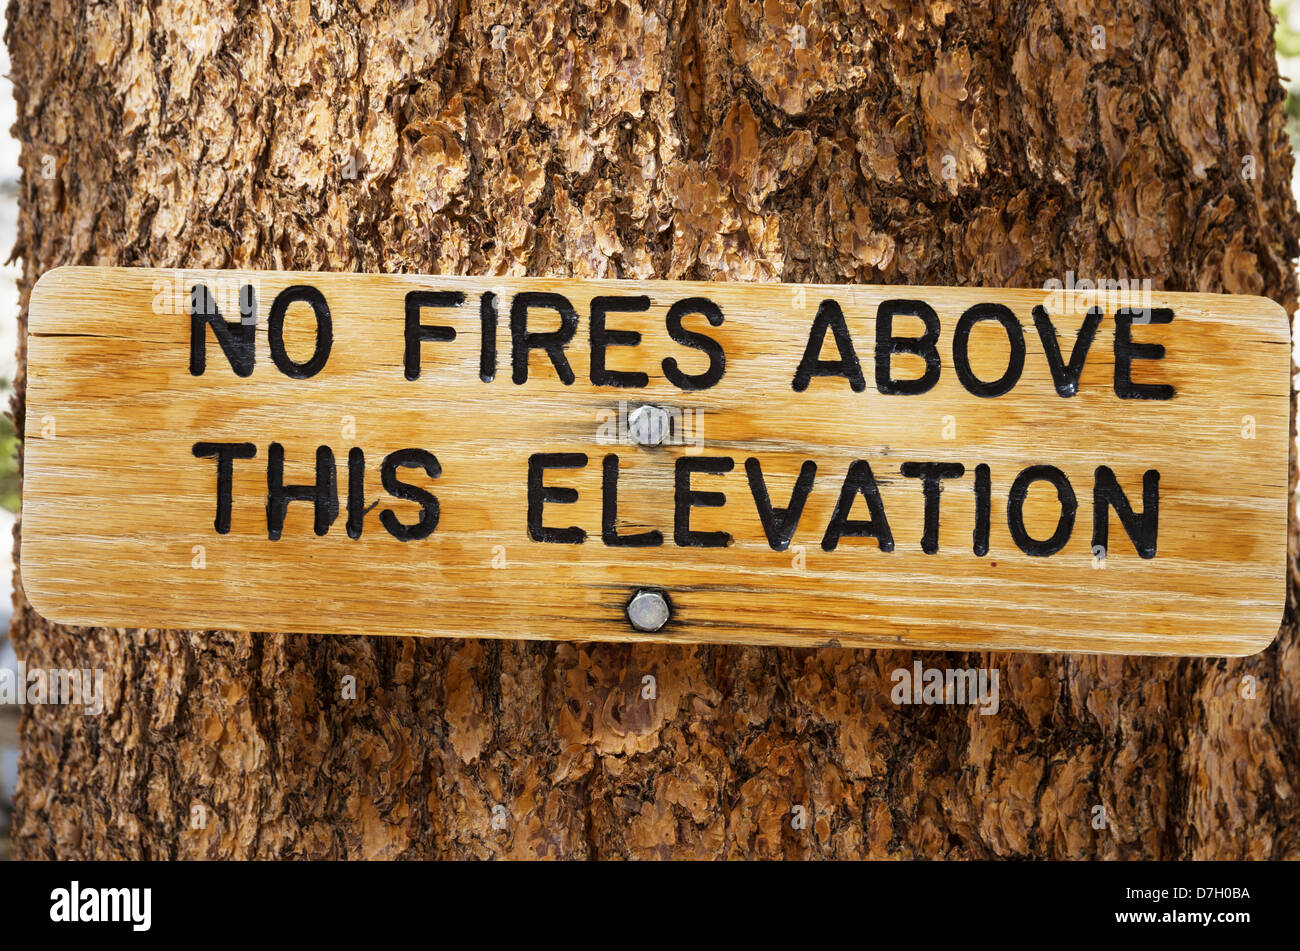 no fires above this elevation wood sign on a tree trunk - Stock Image